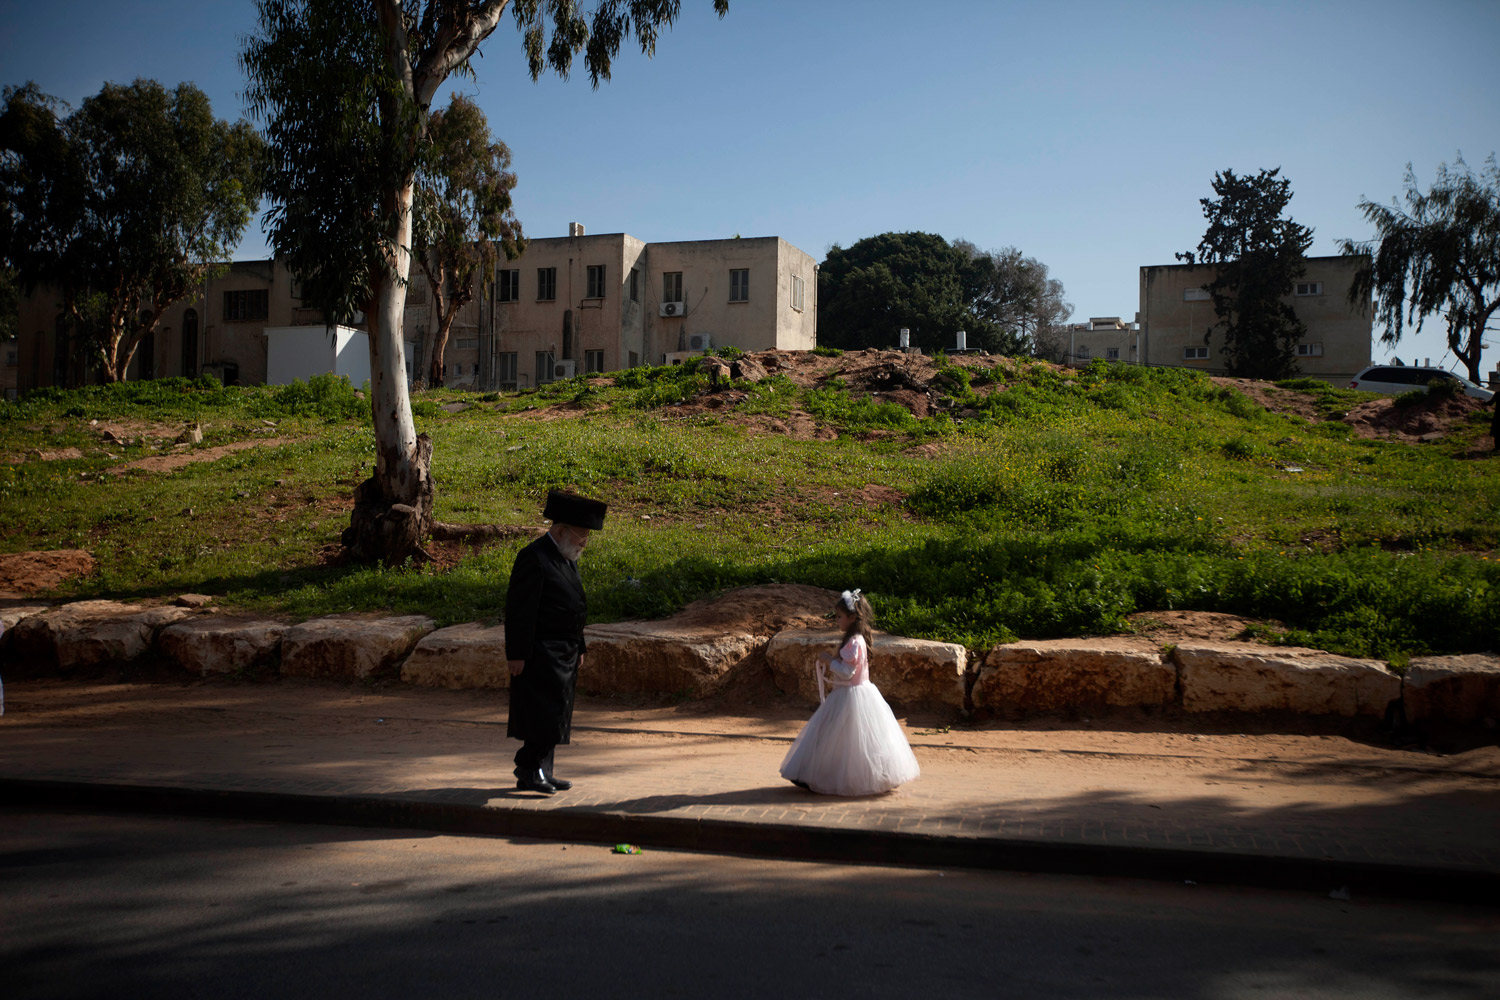 March 8, 2012. An ultra-Orthodox Jewish girl dressed as a bride during a Purim festival in the ultra-Orthodox town of Bnei Brak near Tel Aviv, Israel.